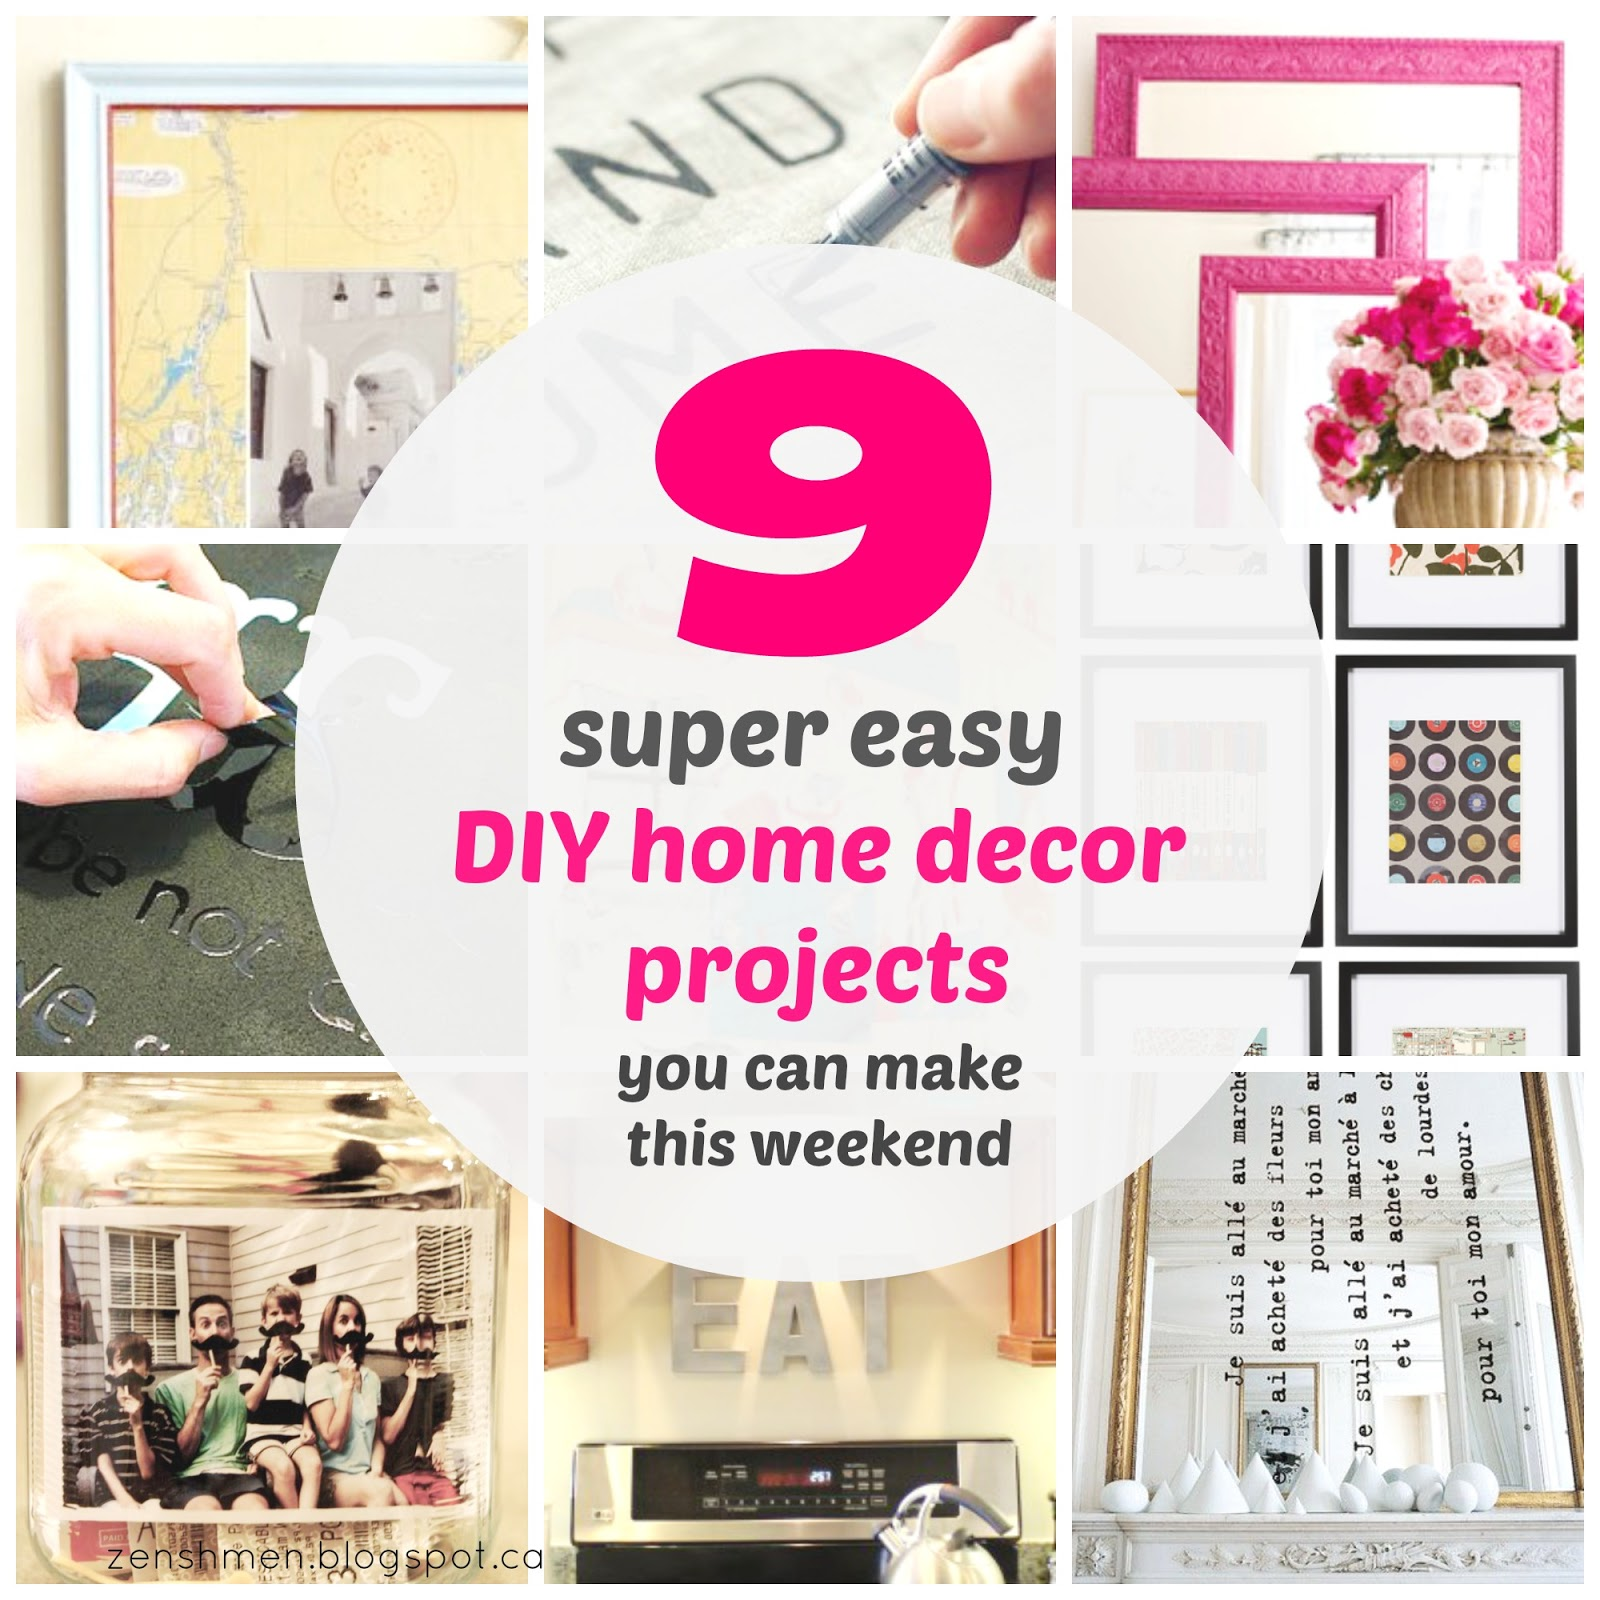 Zen shmen 9 super easy diy home decor projects you can for Decoration items made at home